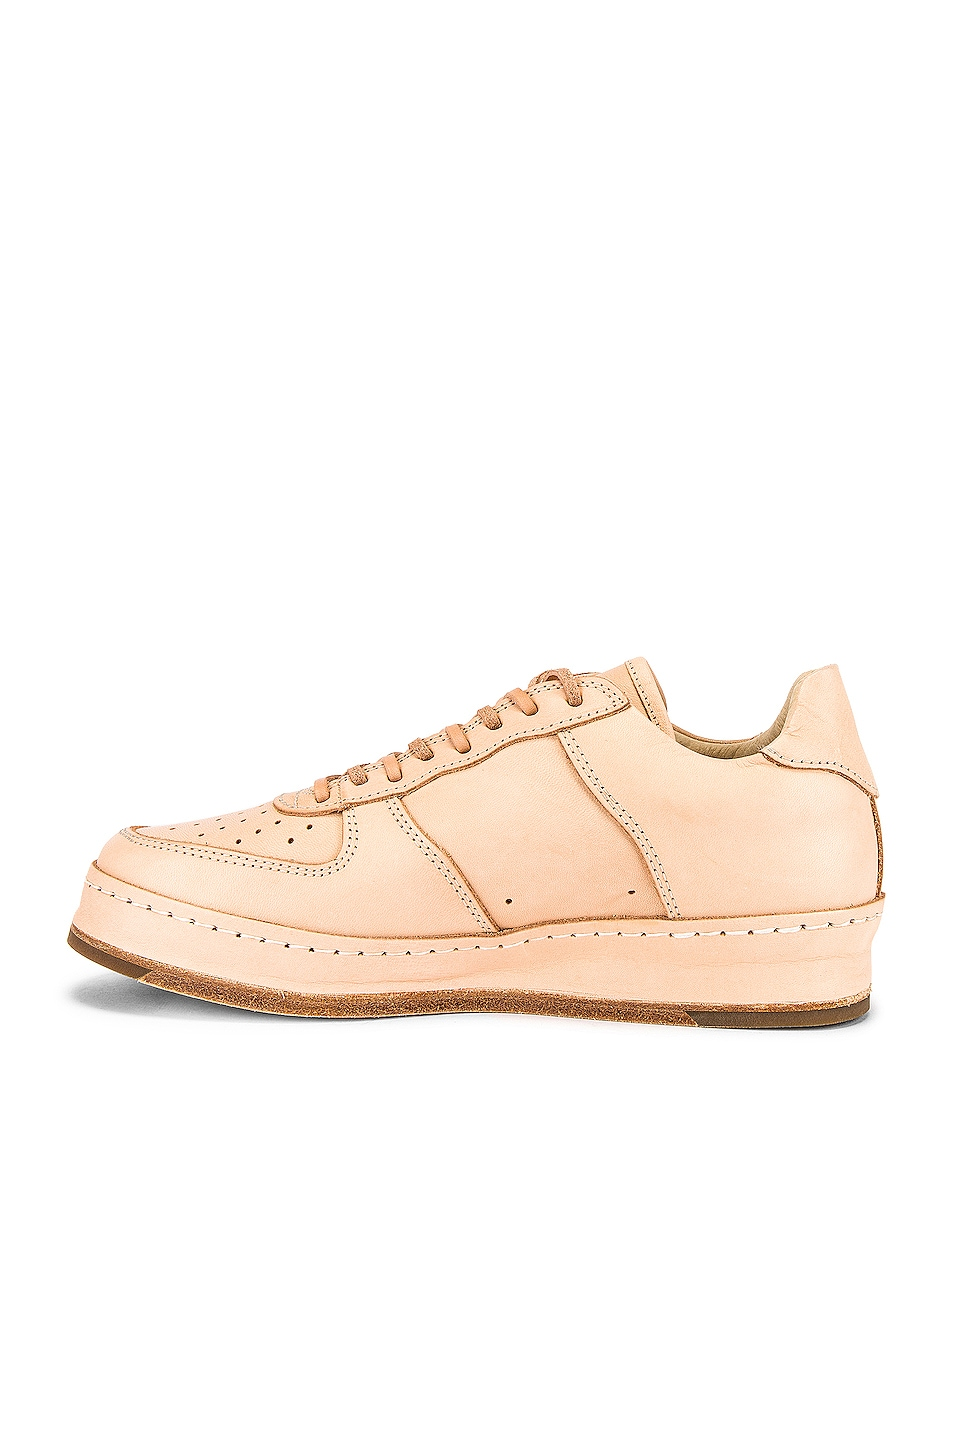 Image 5 of Hender Scheme Manual Industrial Product 22 in Natural